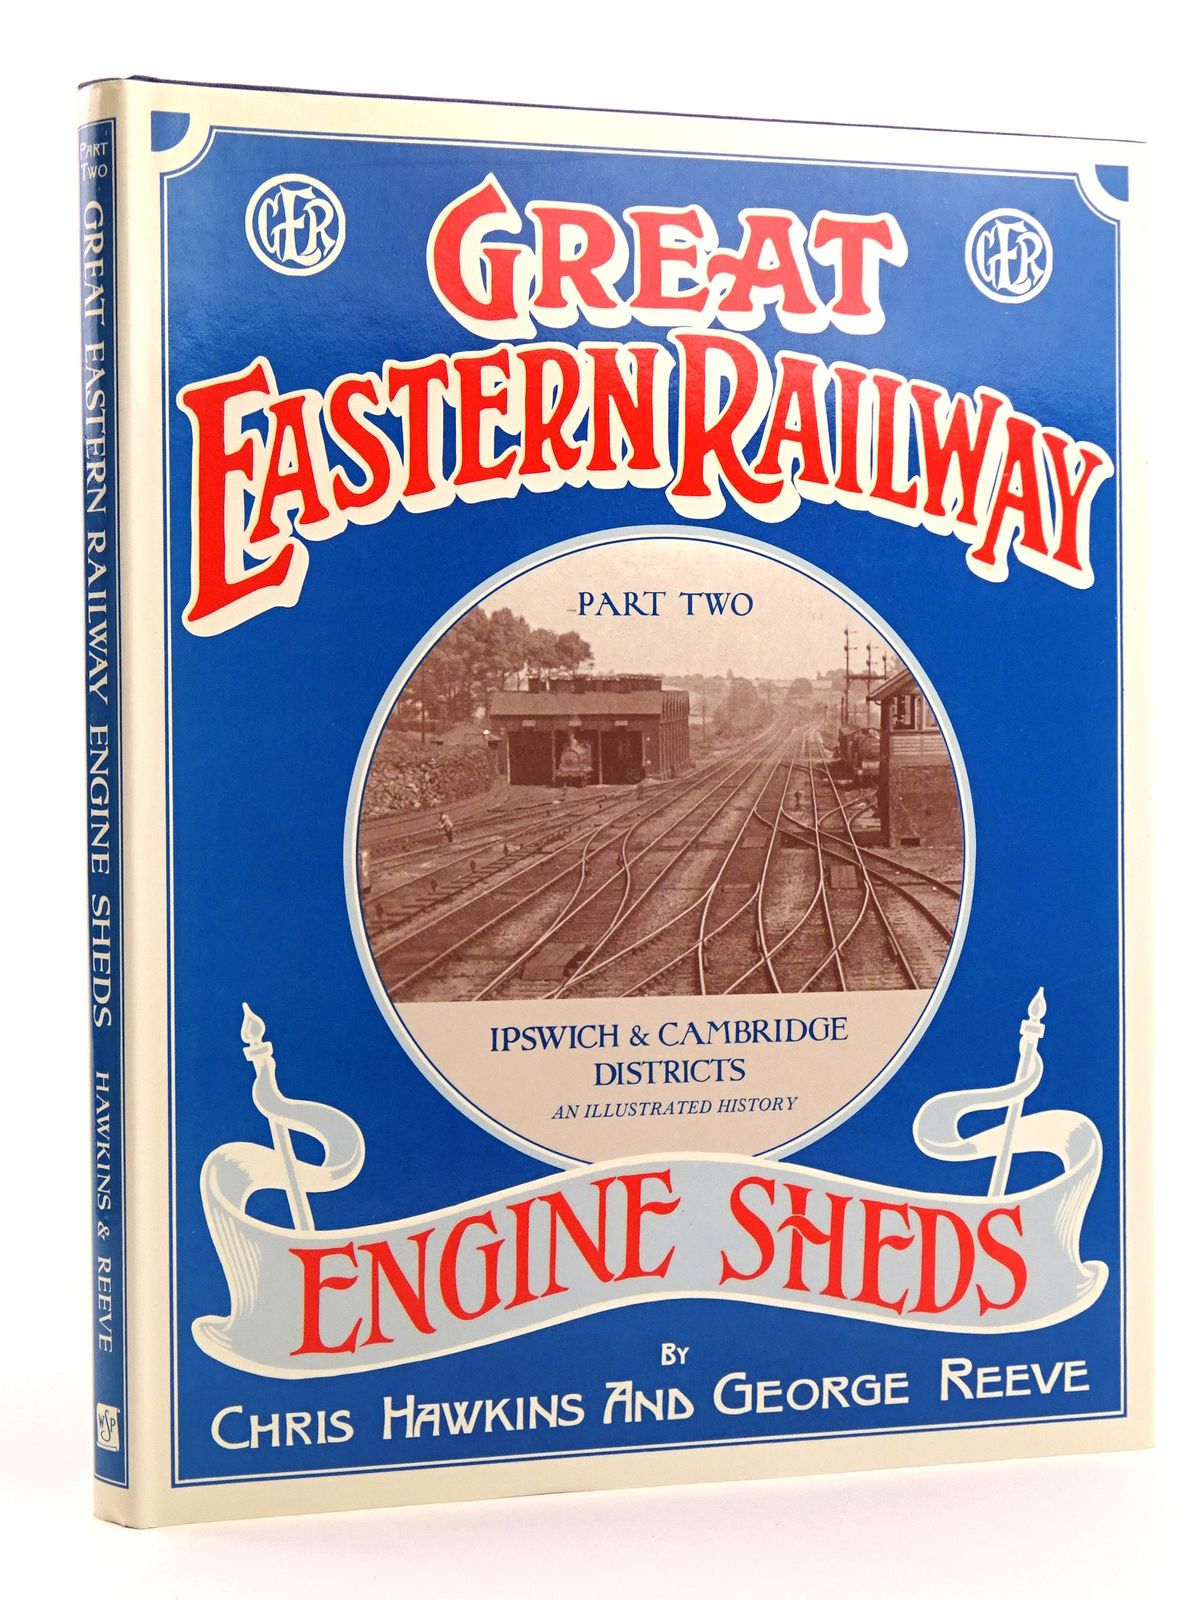 Photo of GREAT EASTERN RAILWAY ENGINE SHEDS PART TWO: IPSWICH AND CAMBRIDGE LOCOMOTIVE DISTRICTS written by Hawkins, Chris<br />Reeve, George published by Wild Swan Publications (STOCK CODE: 1818113)  for sale by Stella & Rose's Books